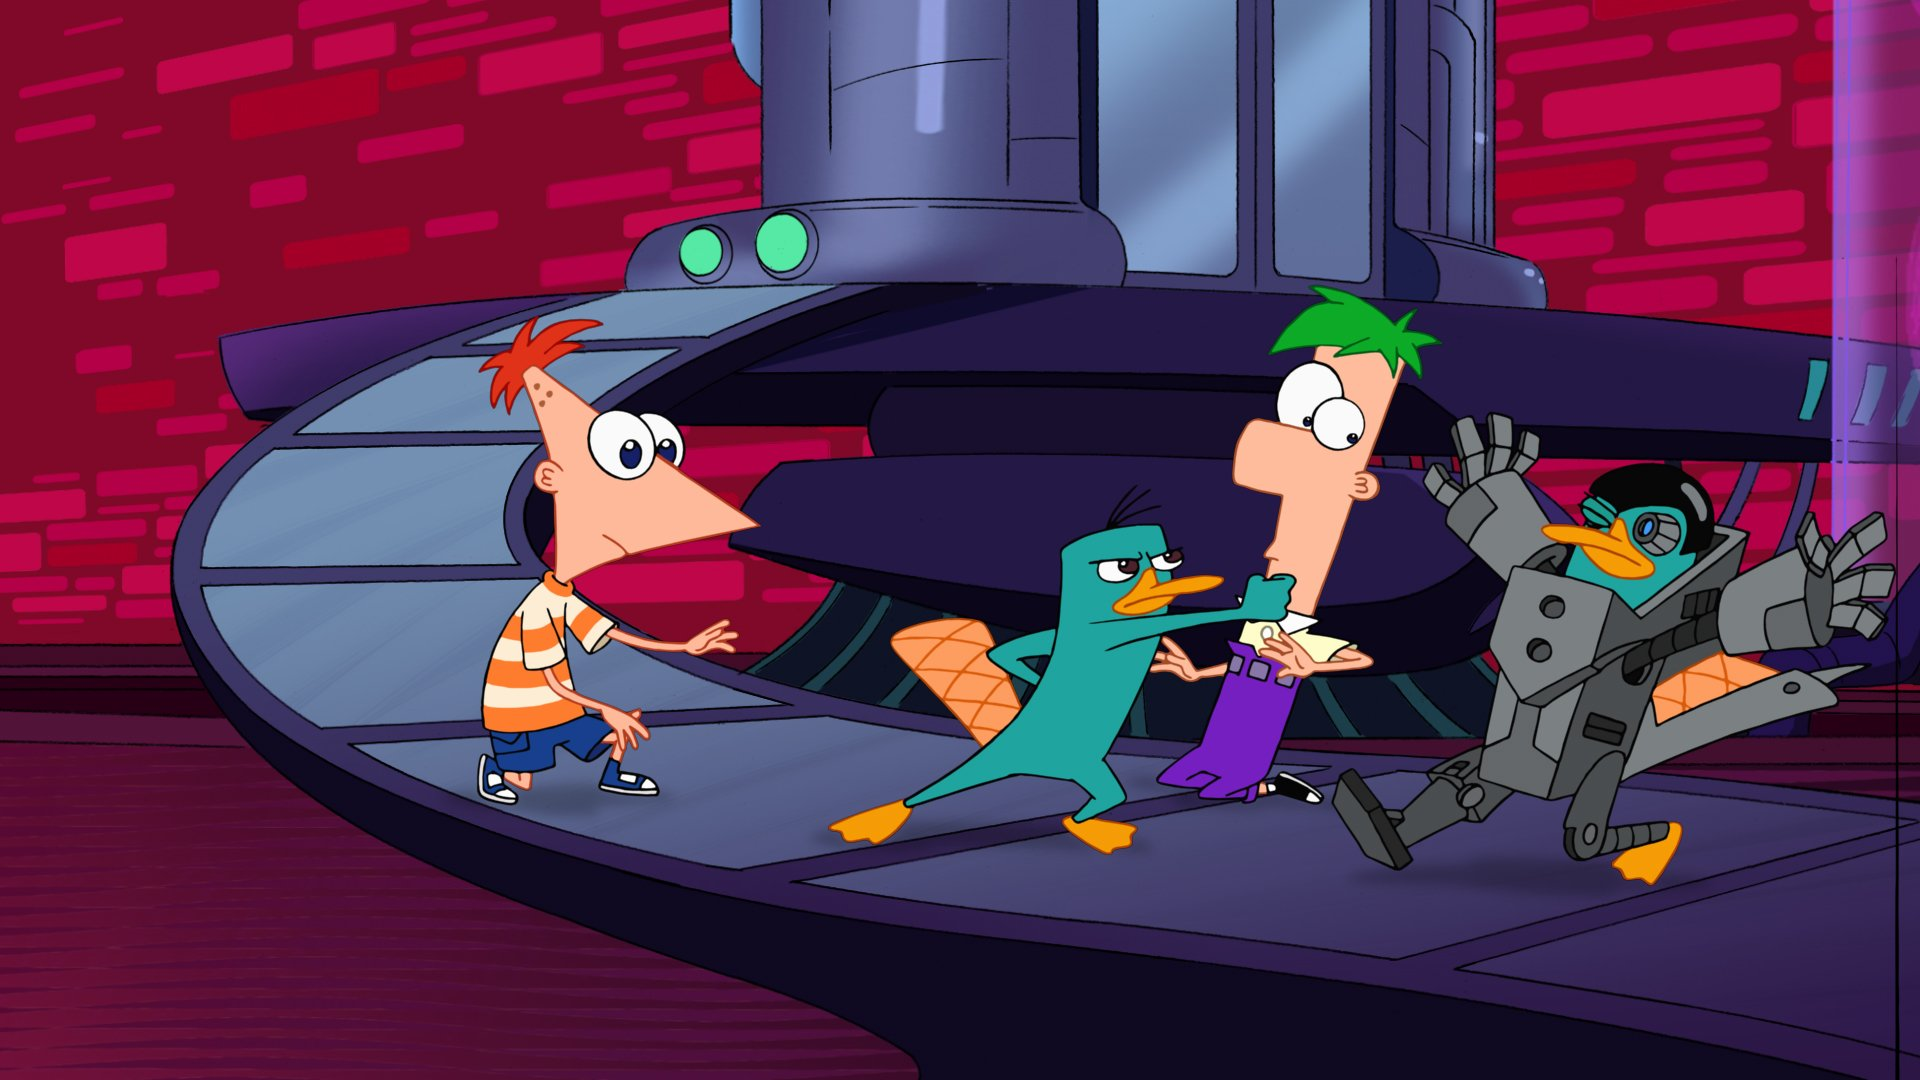 Phineas-ferb-across-the-2nd-dimension